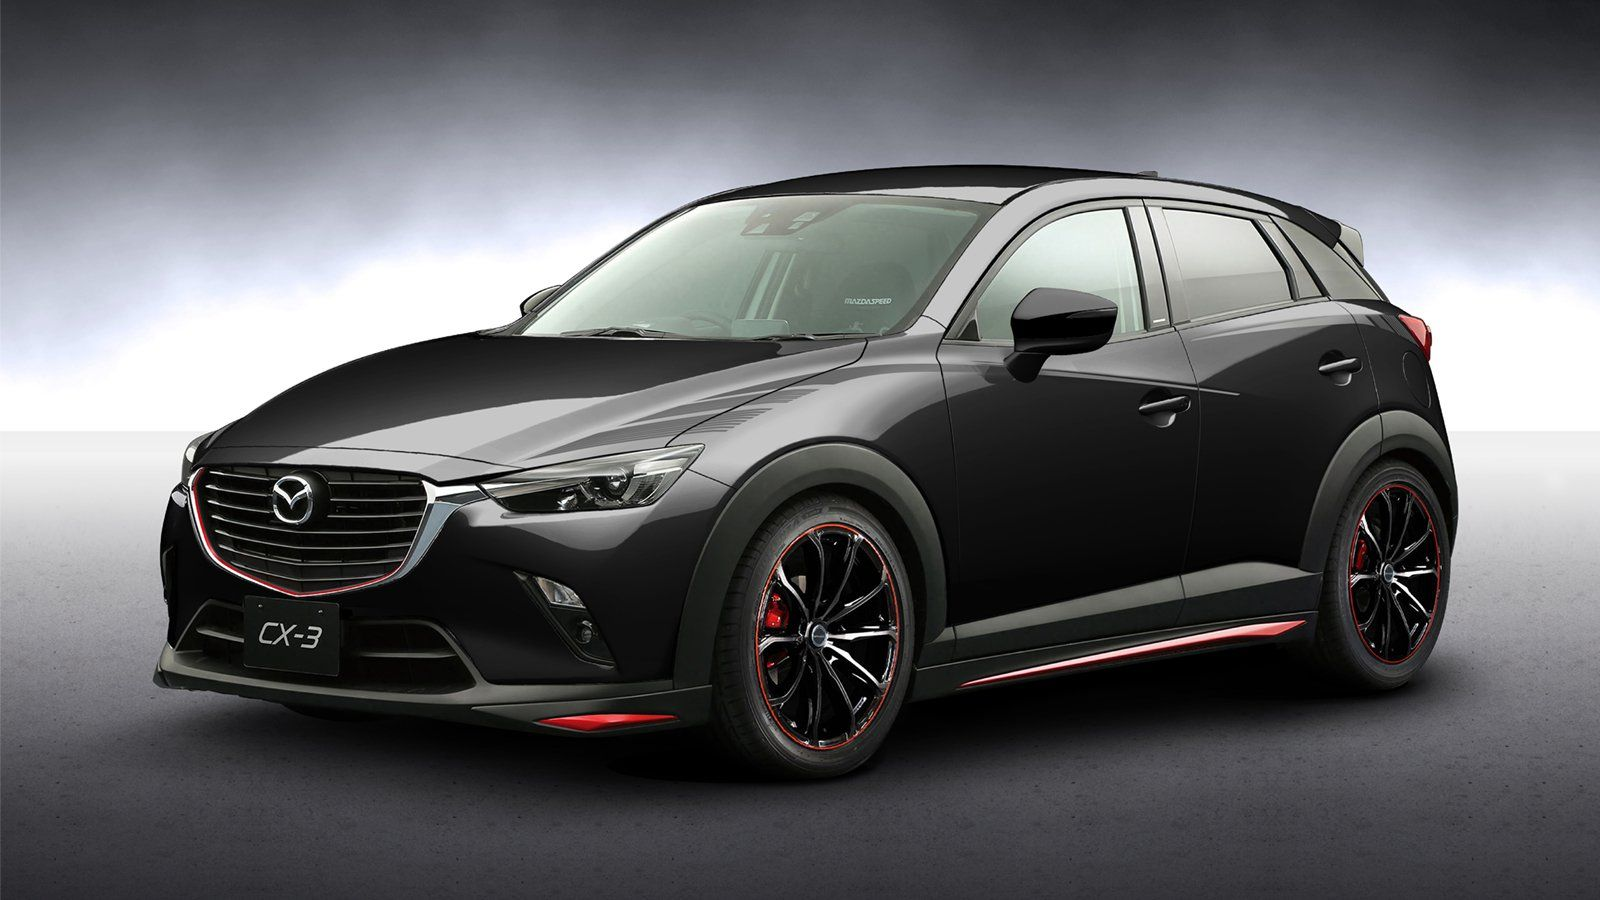 previewing the mazdaspeed cx 3 mazda cx3 forum mazda cx 3 pinterest mazda and cars. Black Bedroom Furniture Sets. Home Design Ideas